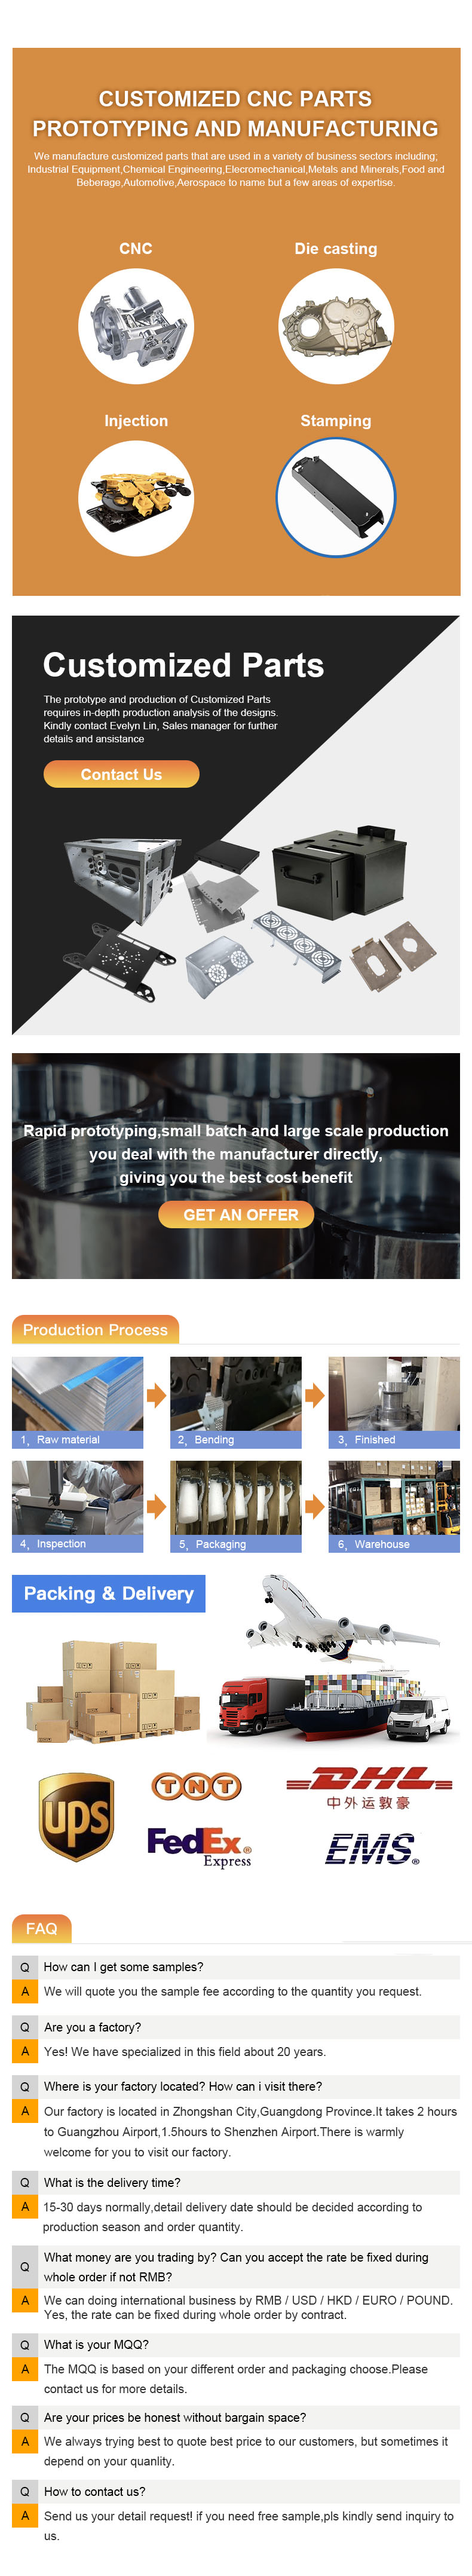 auto stamping parts,CNC MACHINING PARTS,PRECISION CNC MACHINING PARTS,CNC ALUMINUM PARTS,Machined Products,CNC Machined Products,BoYang Hardware Products